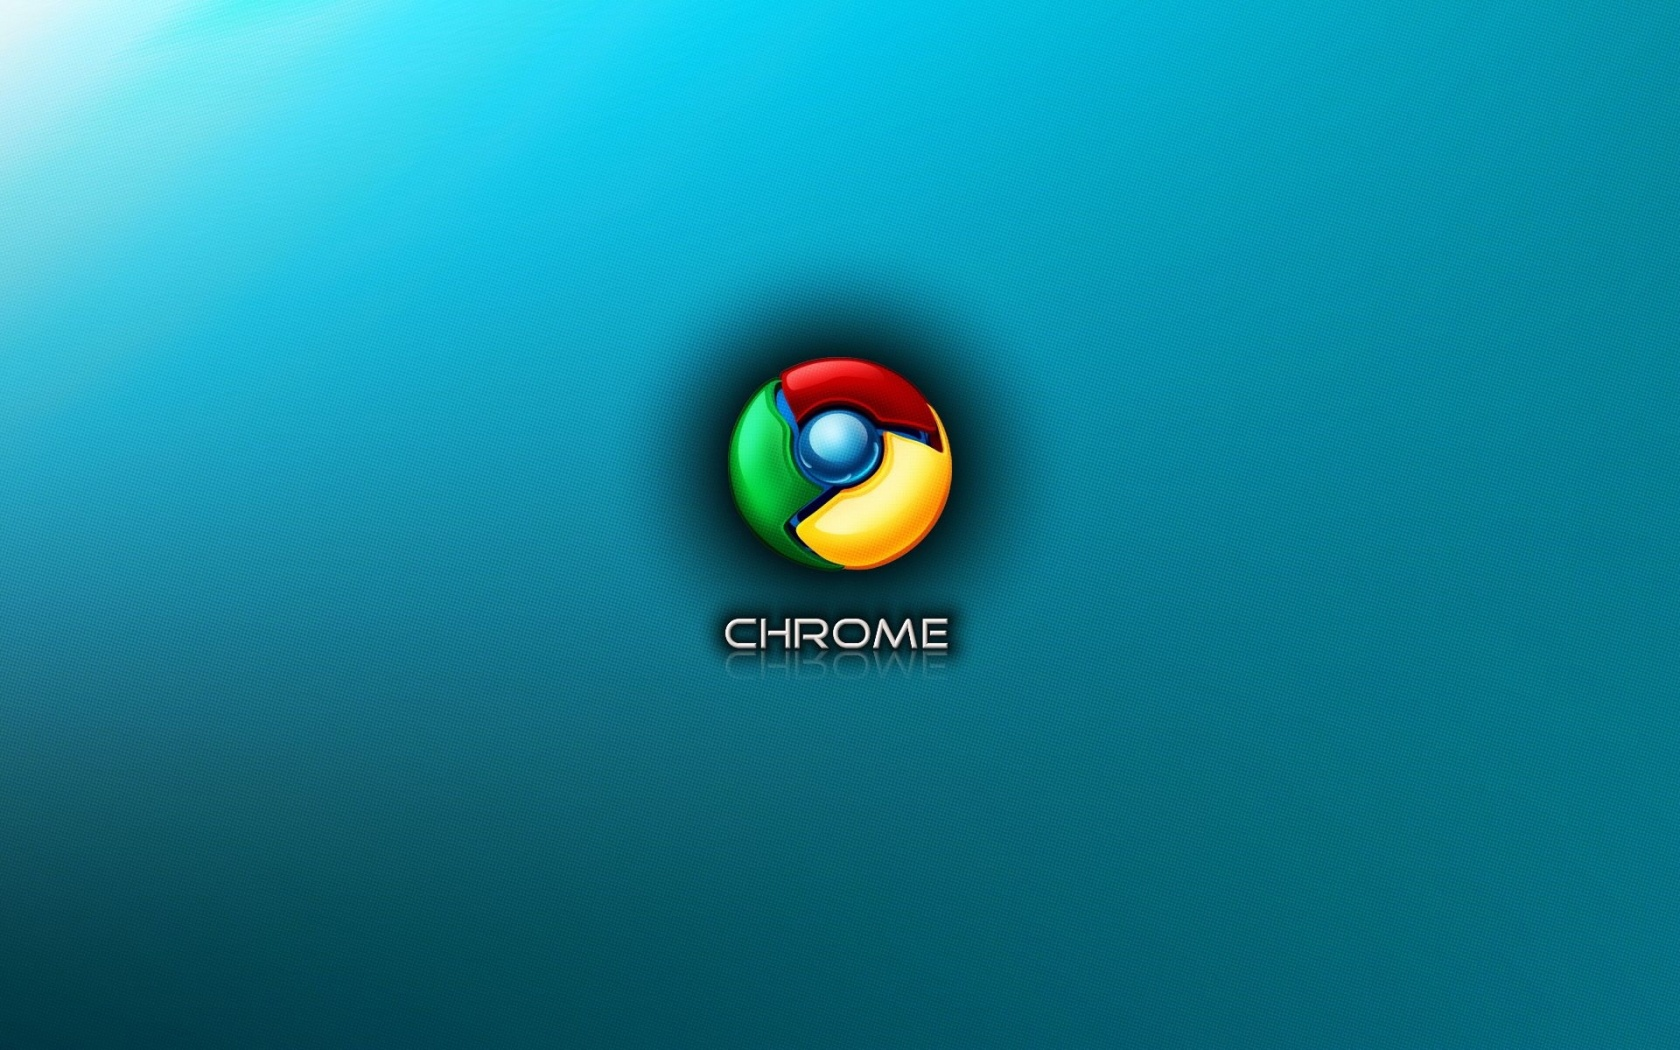 chrome hd wallpapers 1680x1050 509172